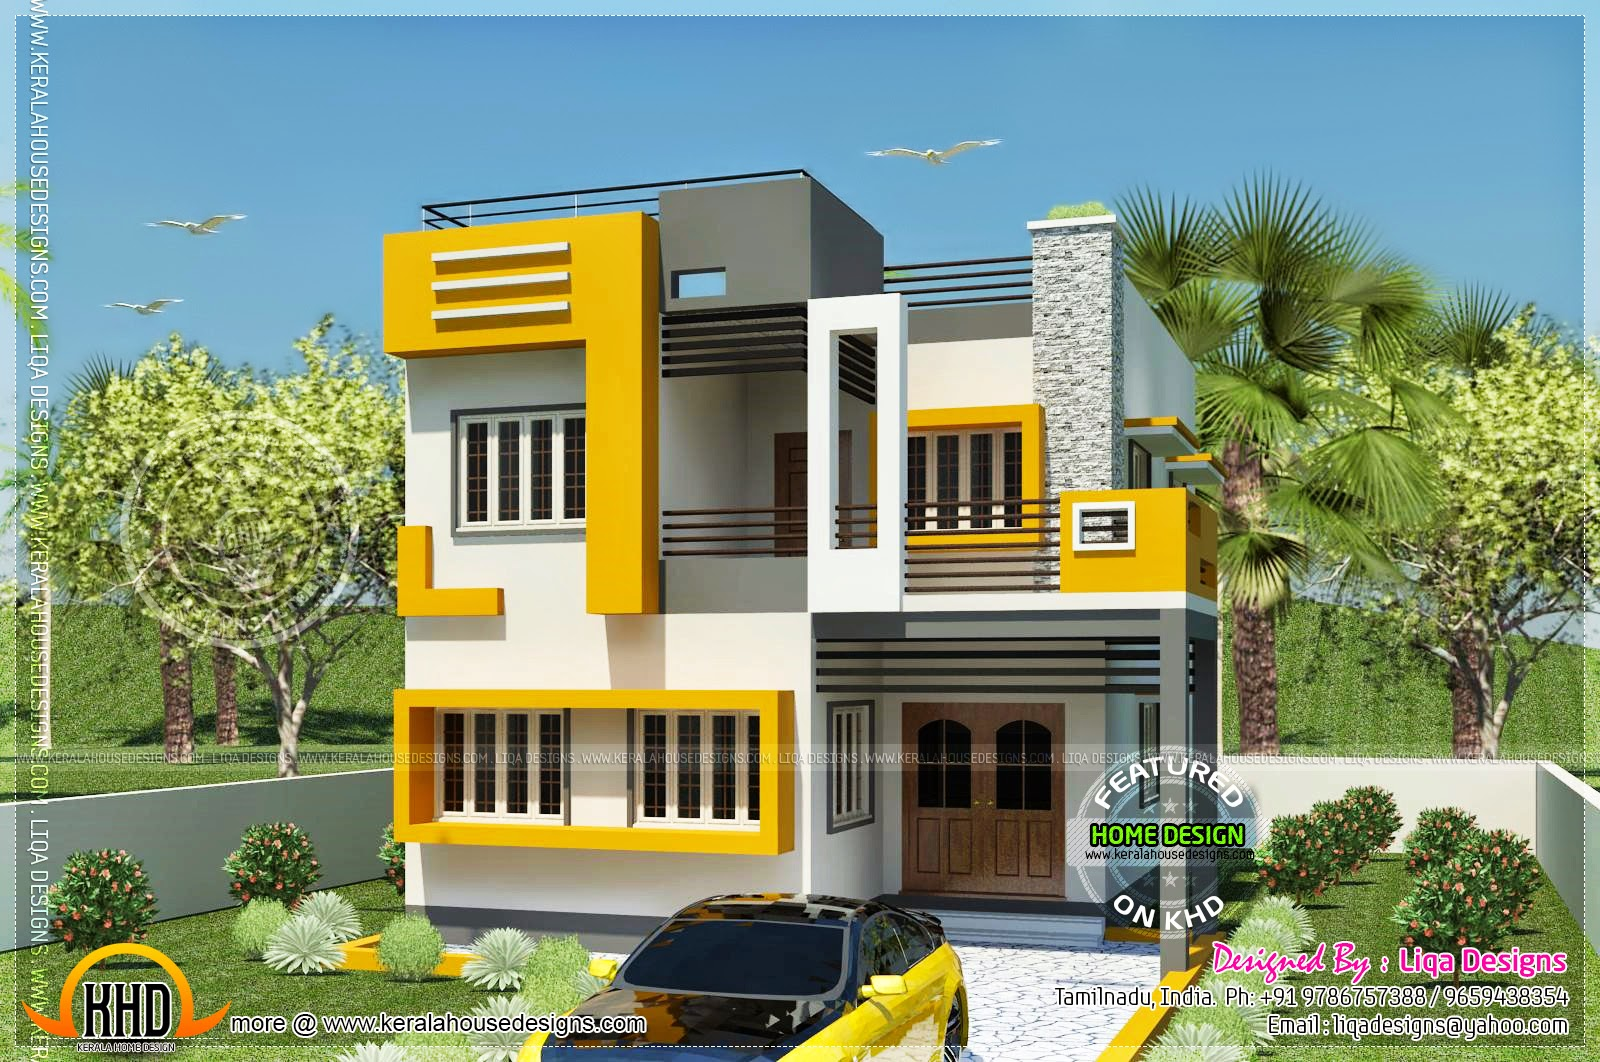 New house plans indian style house plan 2017 for House architecture styles in india